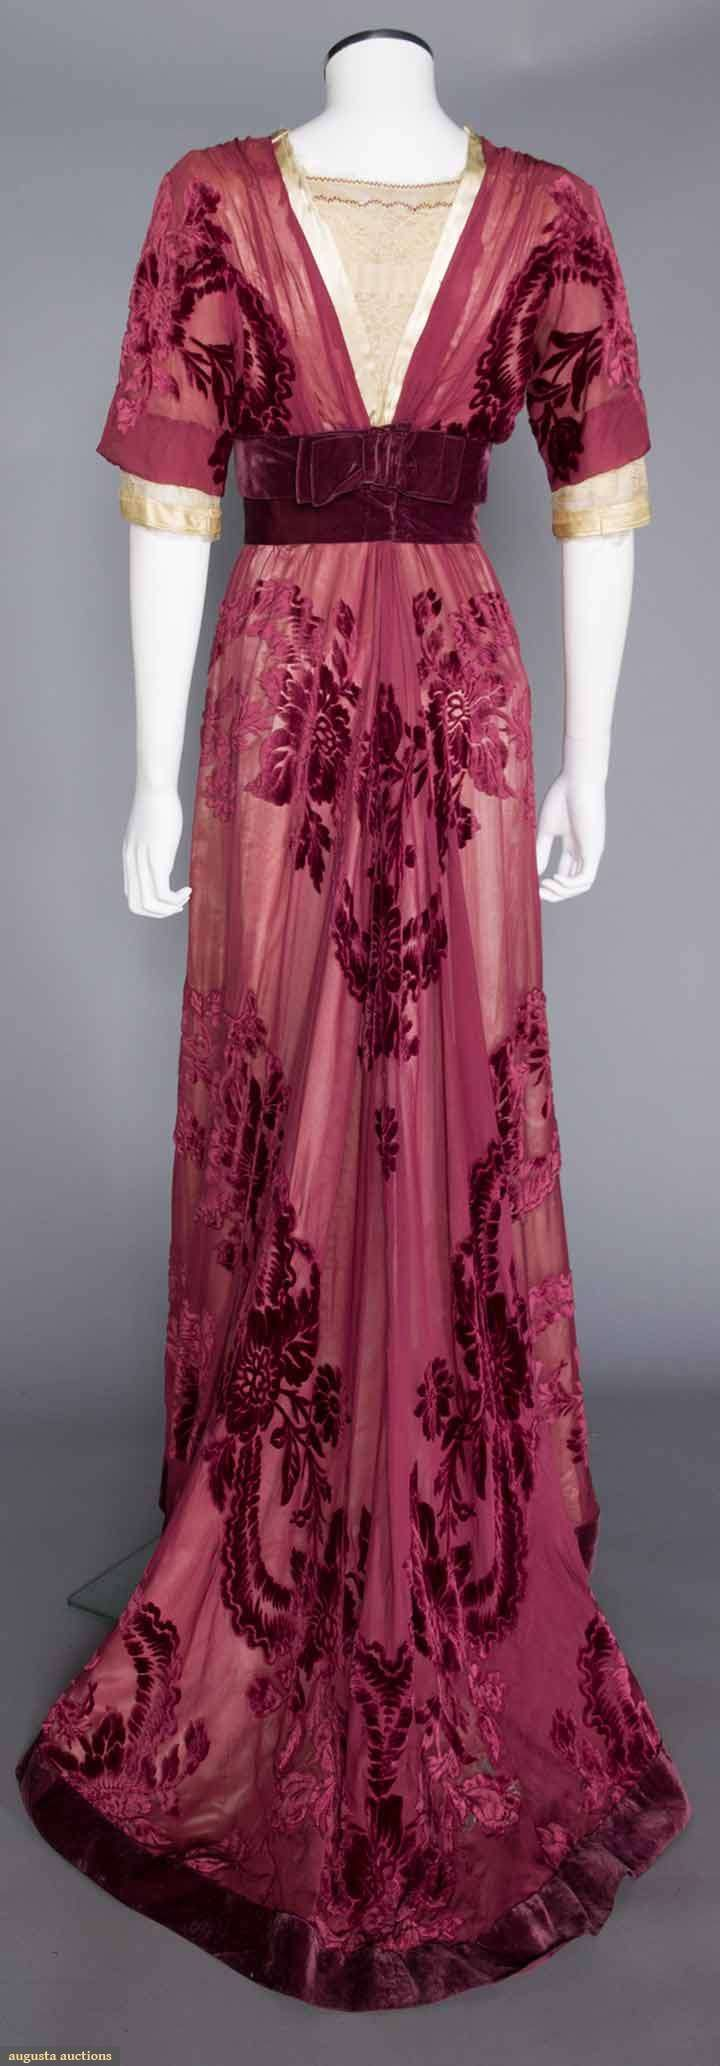 Gown (image 4) | House of Worth | France; Paris | 1908 | cut velvet, chiffon | Augusta Auctions | November 16, 2016